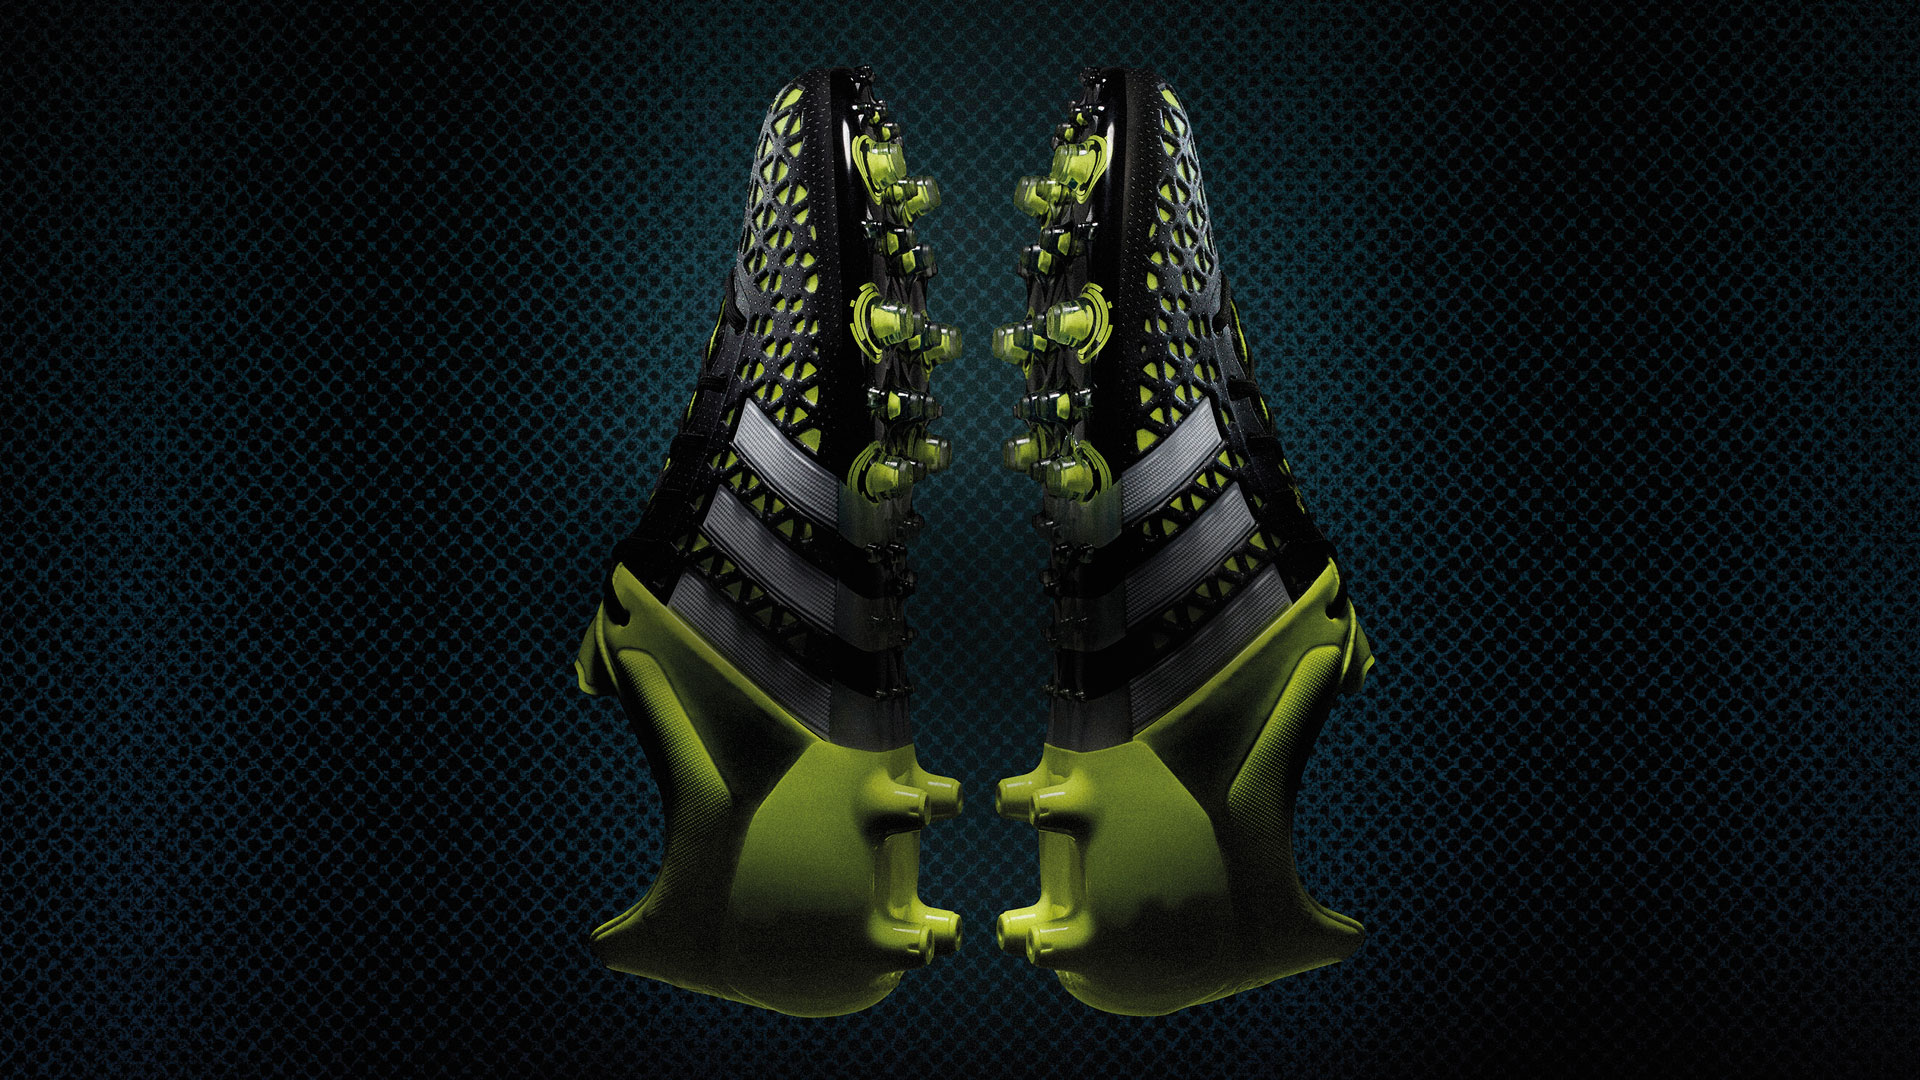 Adidas Ace 15 - Ground Control